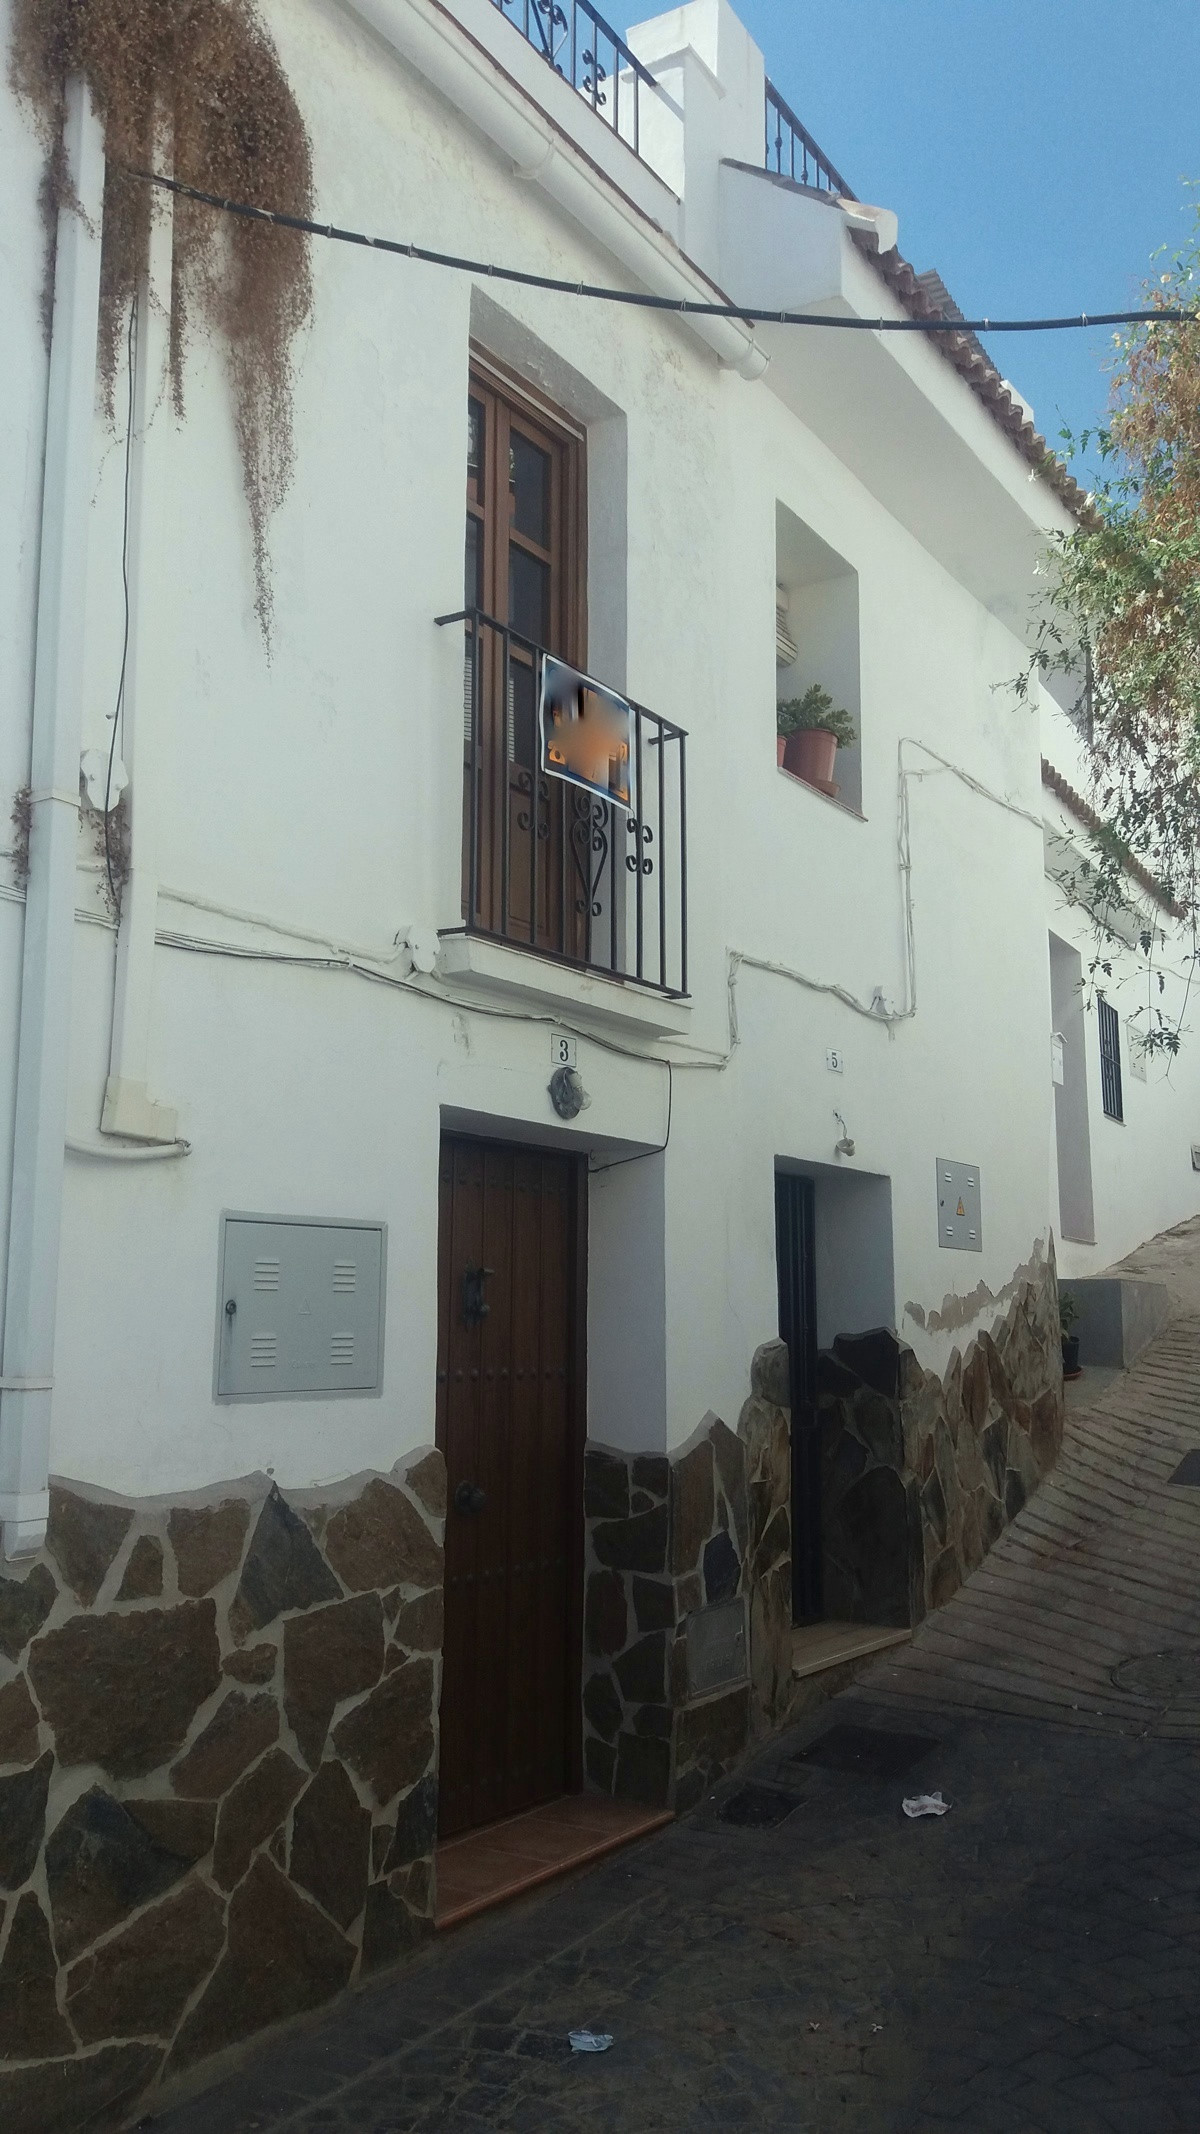 2 Bedroom Townhouse Set in the white Village of Guaro I a quiet village street. The property has rec, Spain